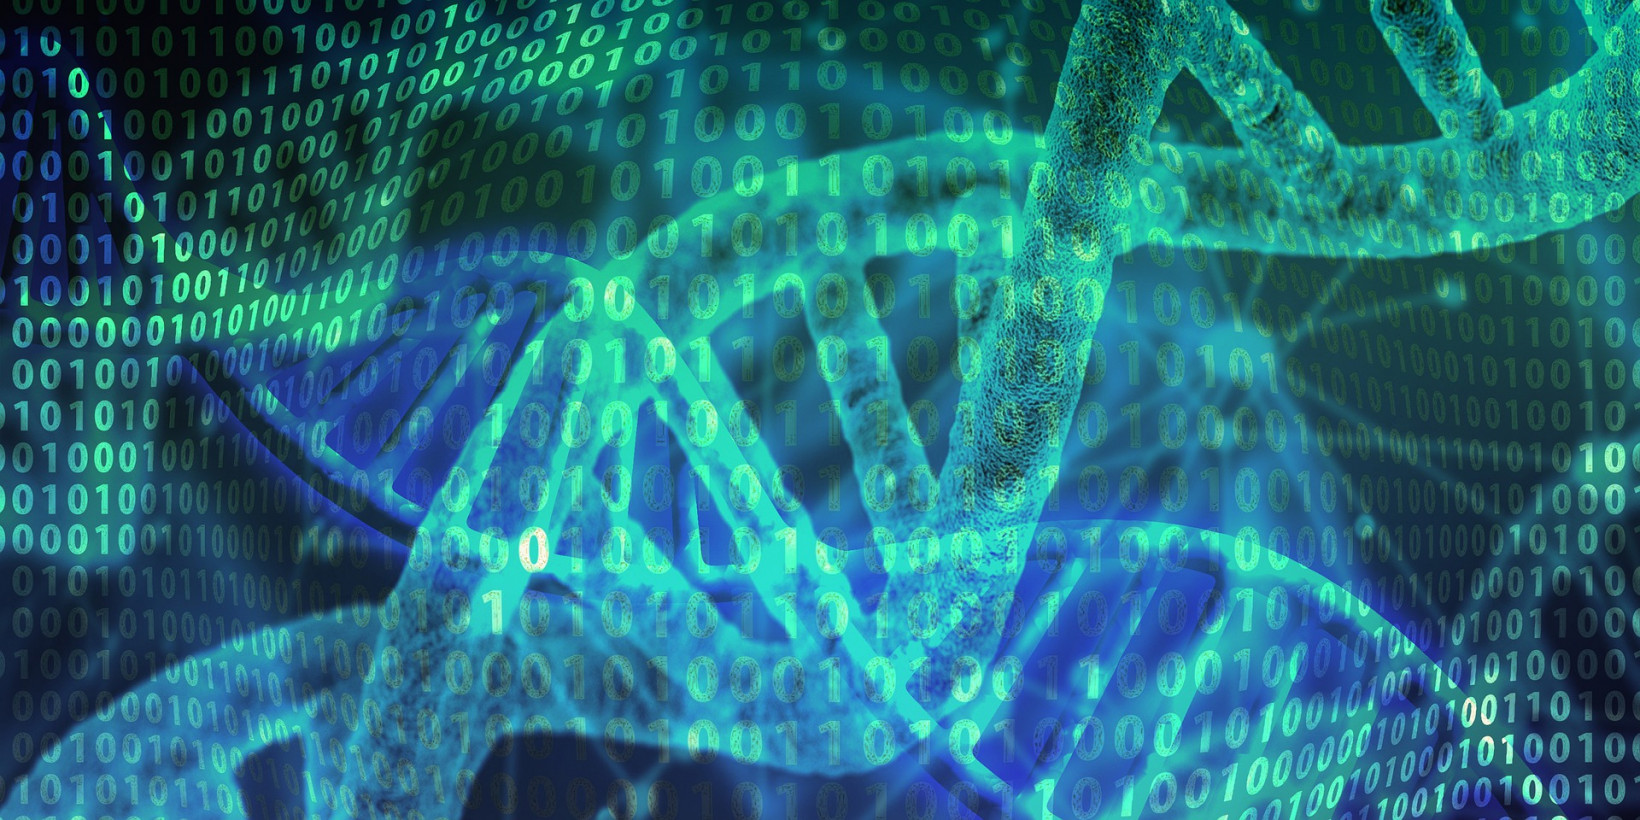 Researchers are looking into DNA data storage.